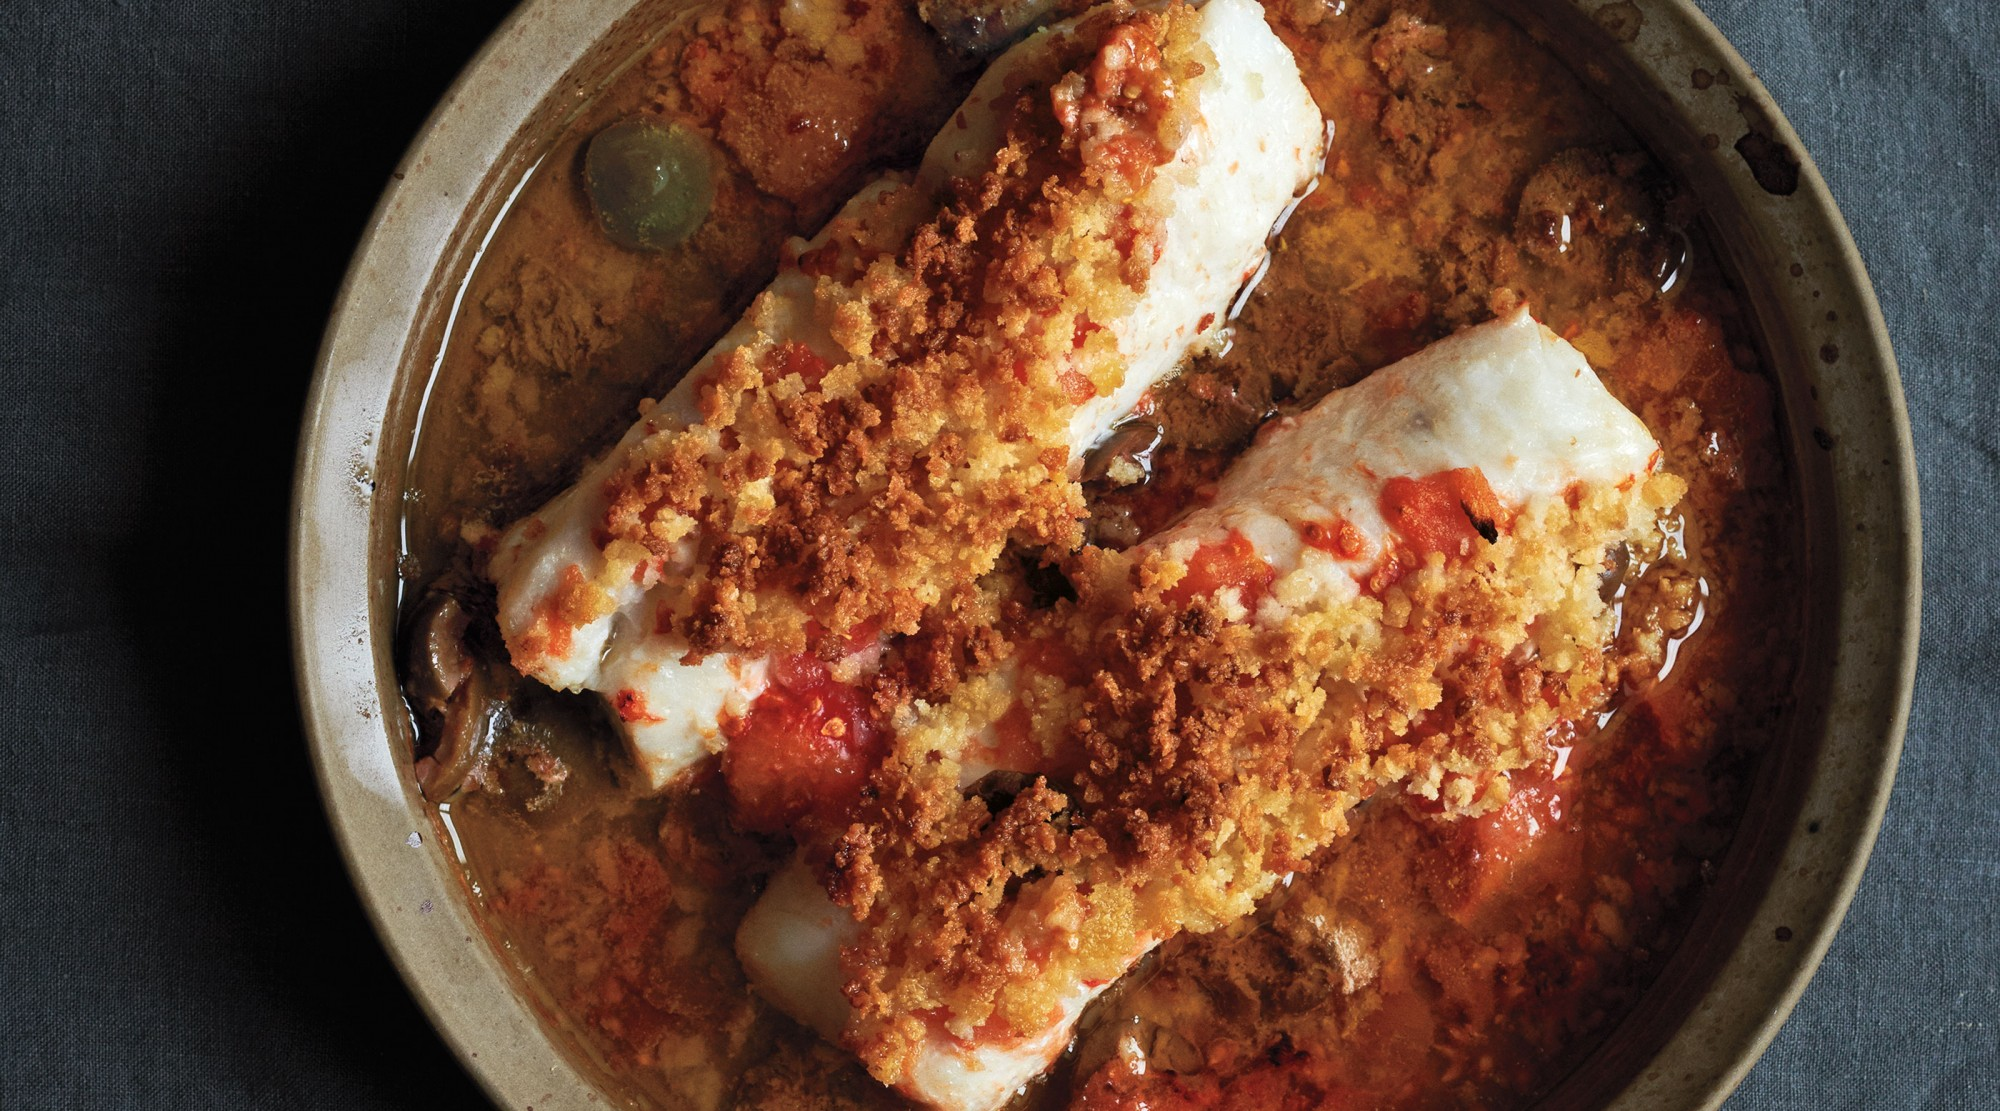 baked-cod-crushed-tomatoes_Ditte-Isager_LEDE